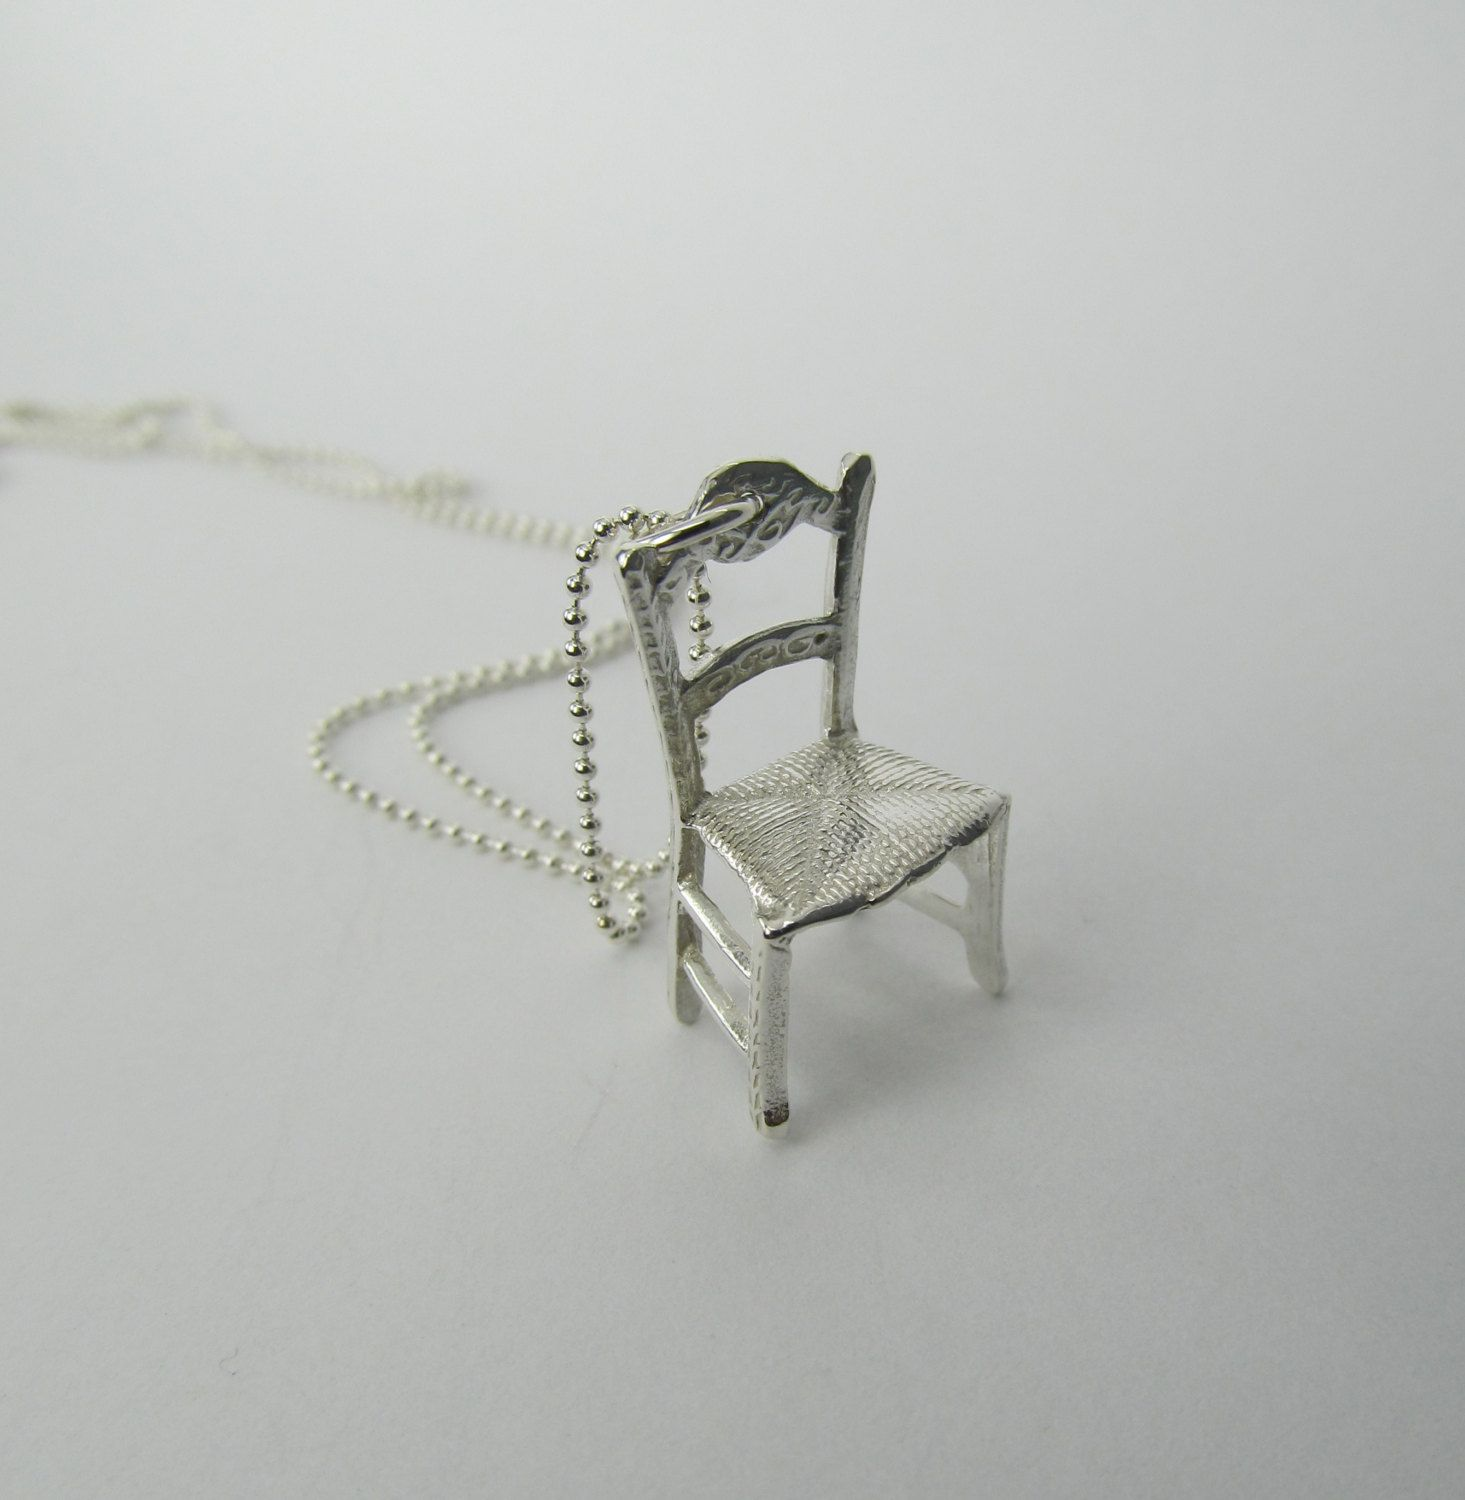 Tiny Chair Necklace Sterling Silver Miniature Furniture Joyeria